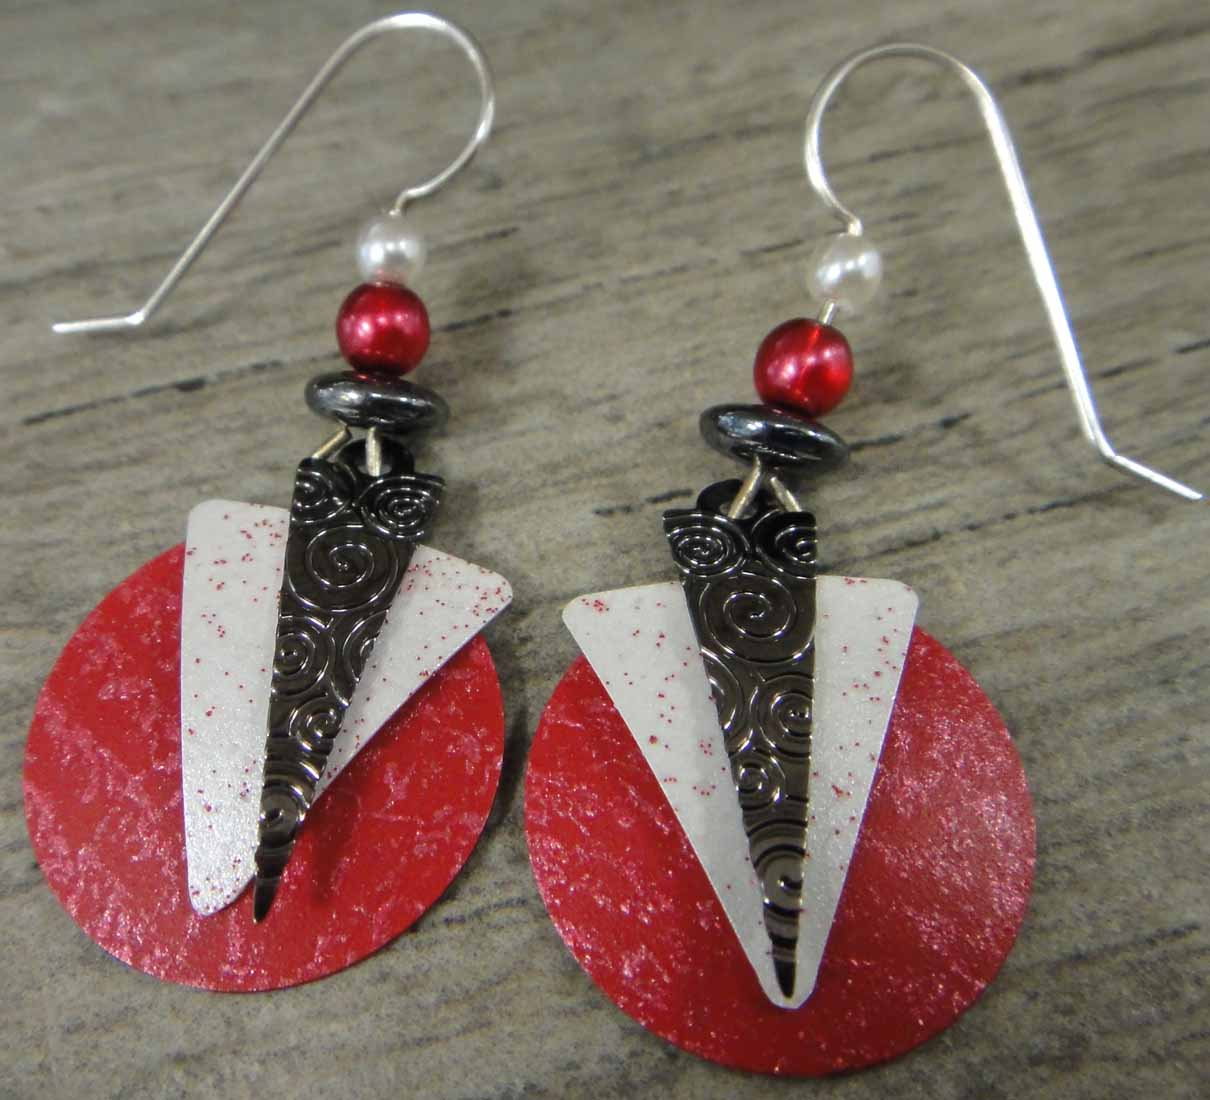 These red, white and black dangle earrings are handmade by Adajio.